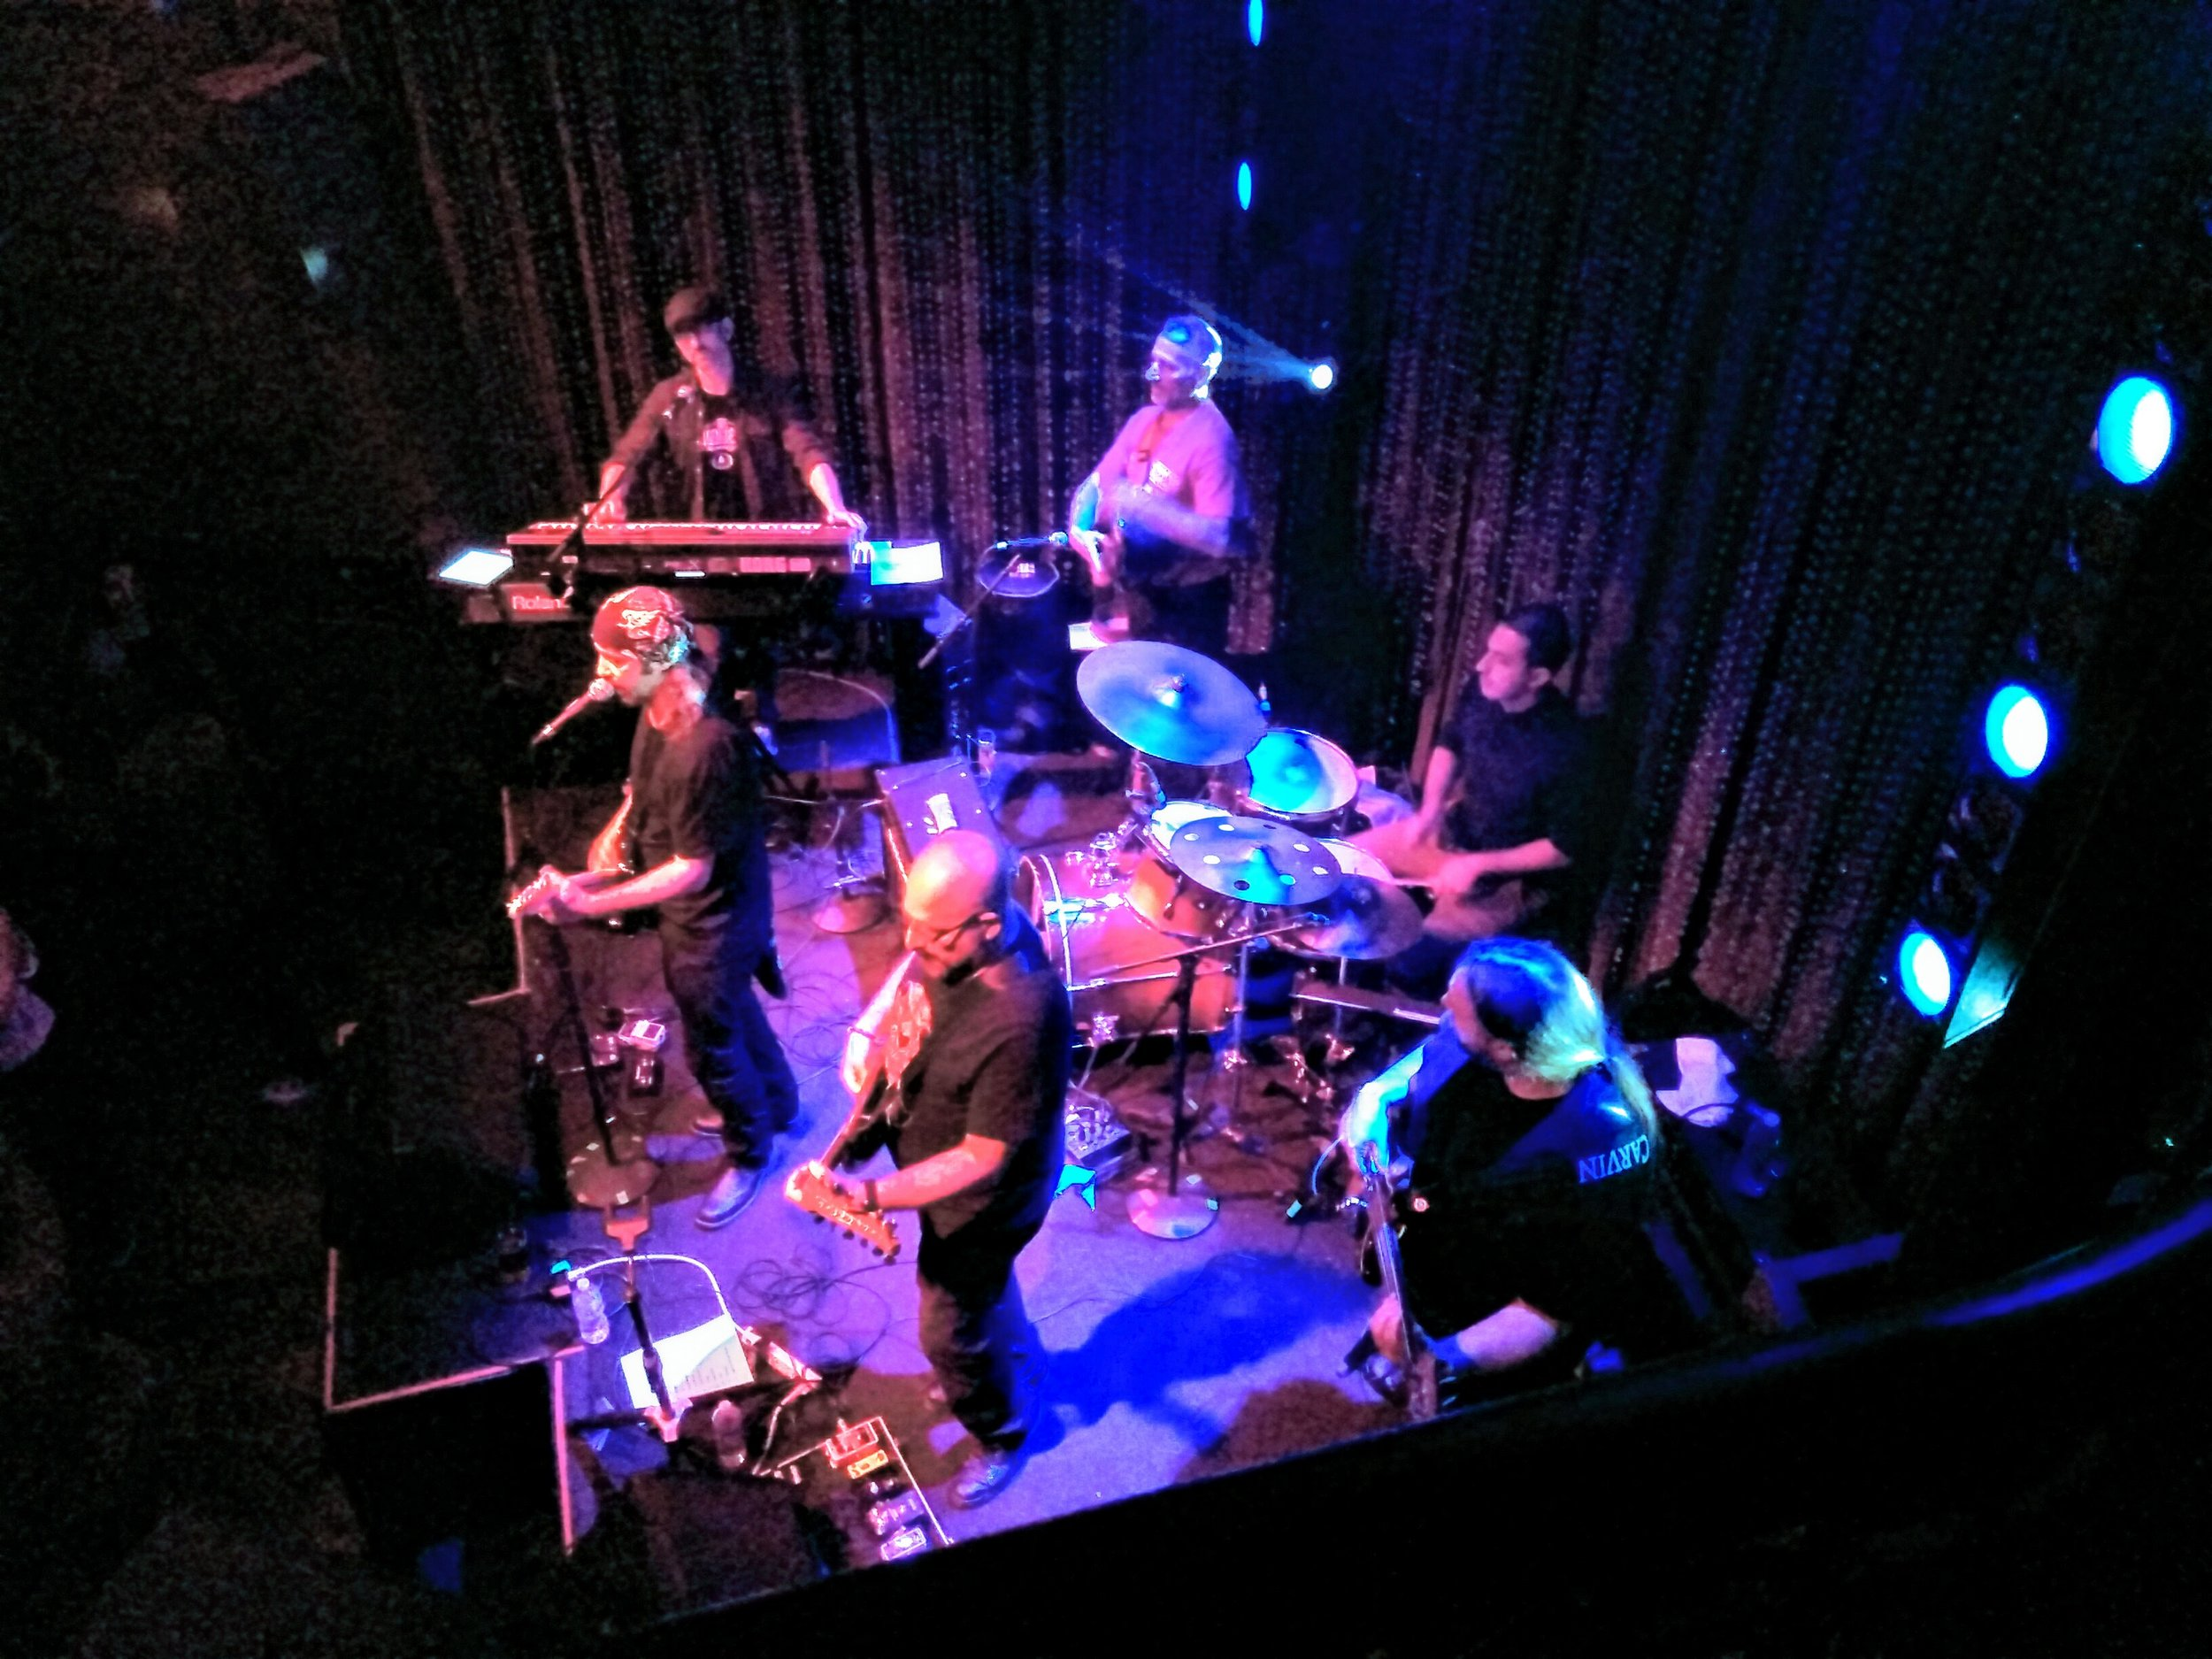 Barakka  playing at  Johnny Brenda's  at the YallaPunk Festival, September 2nd, 2017.